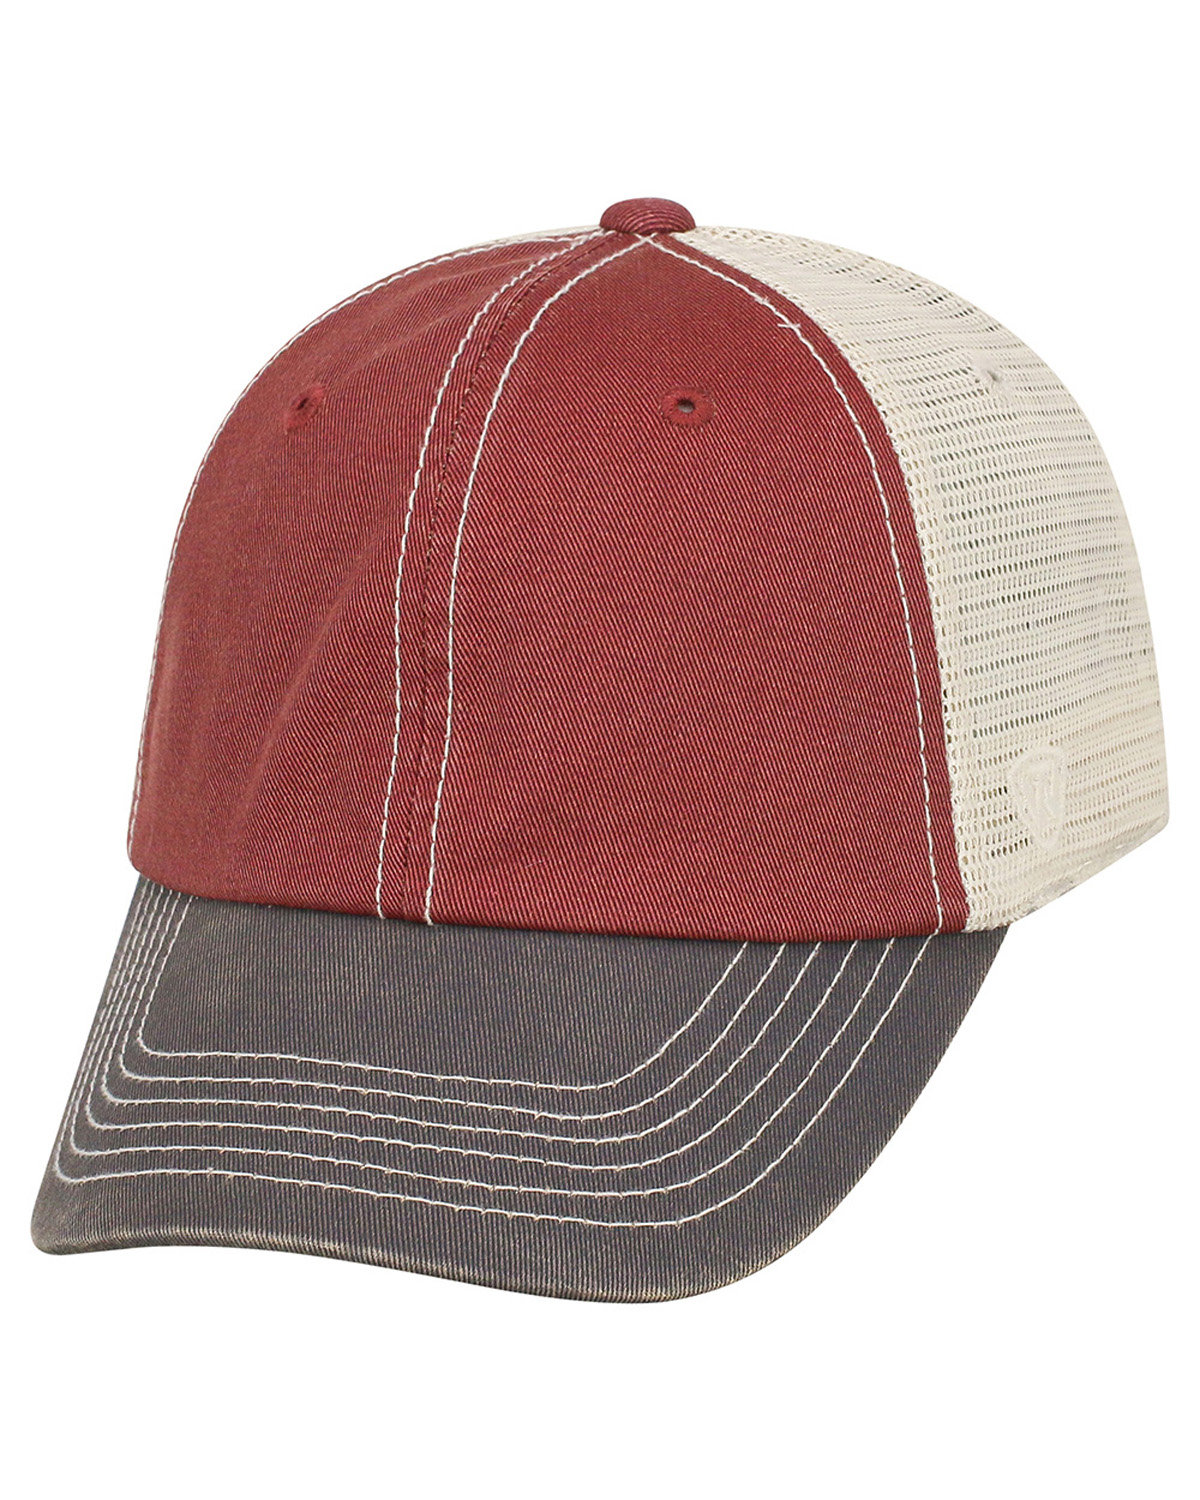 Top Of The World Adult Offroad Cap BURGUNDY